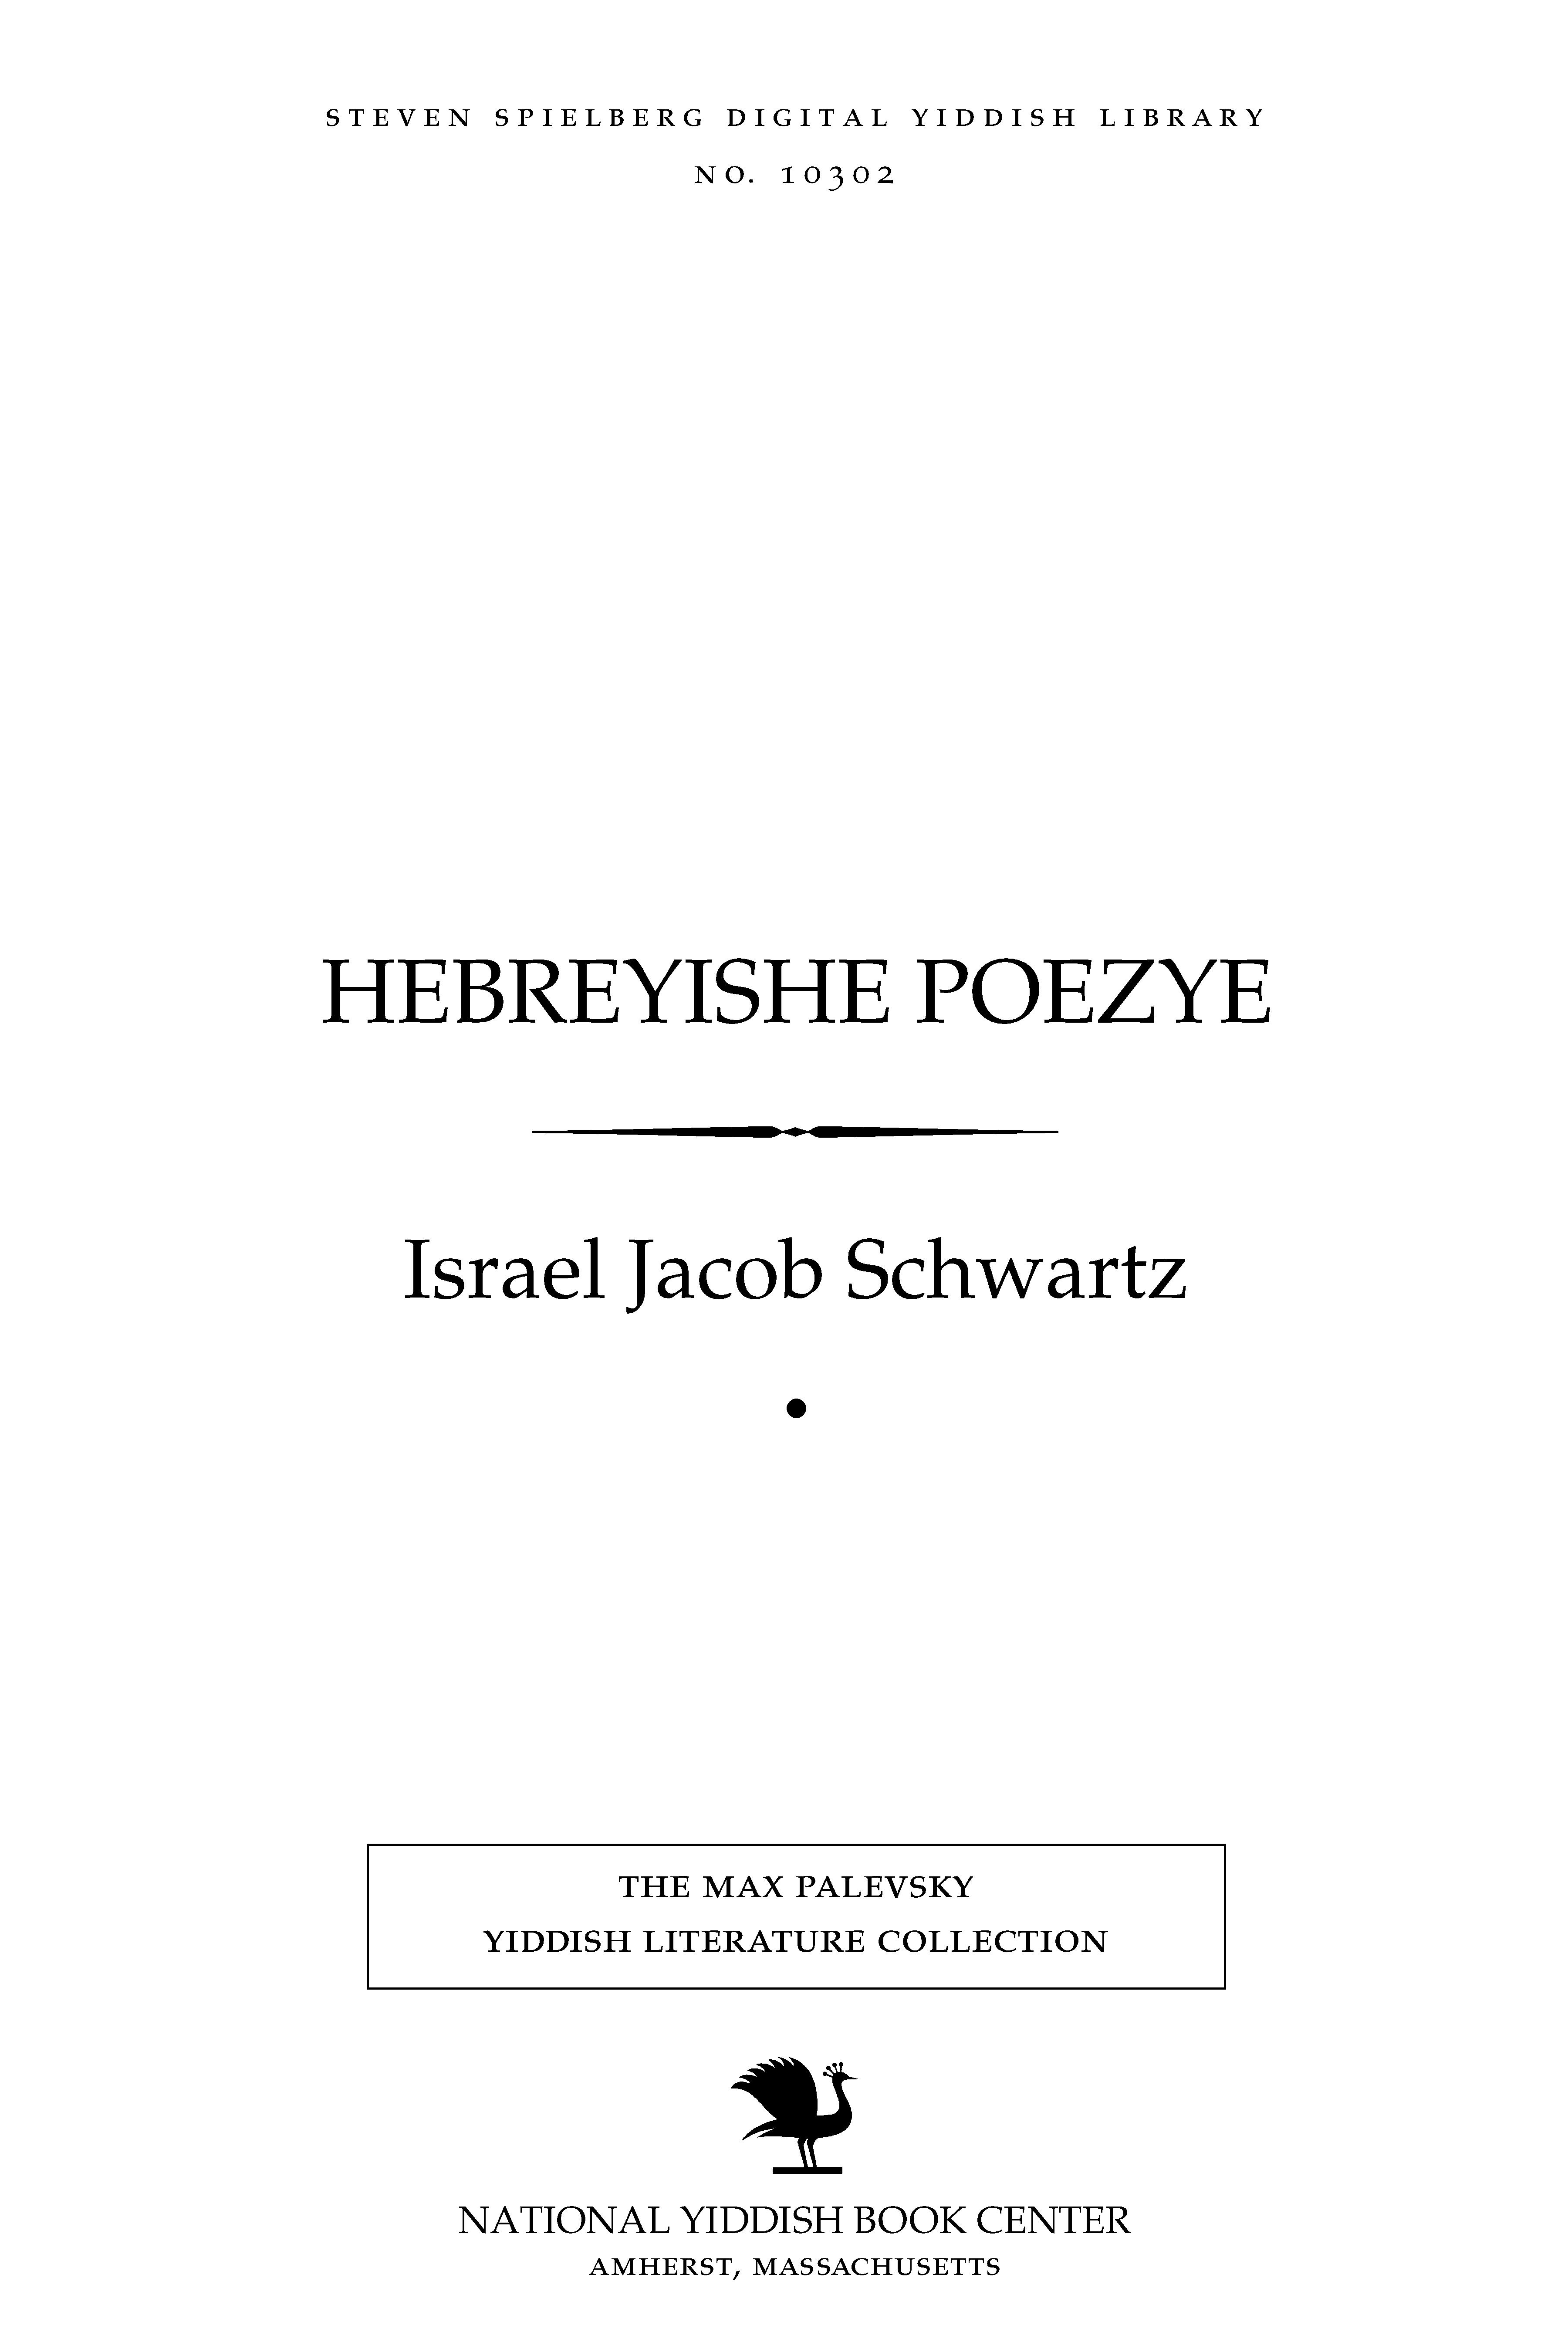 Cover of: Hebreyishe poezye: anṭologye